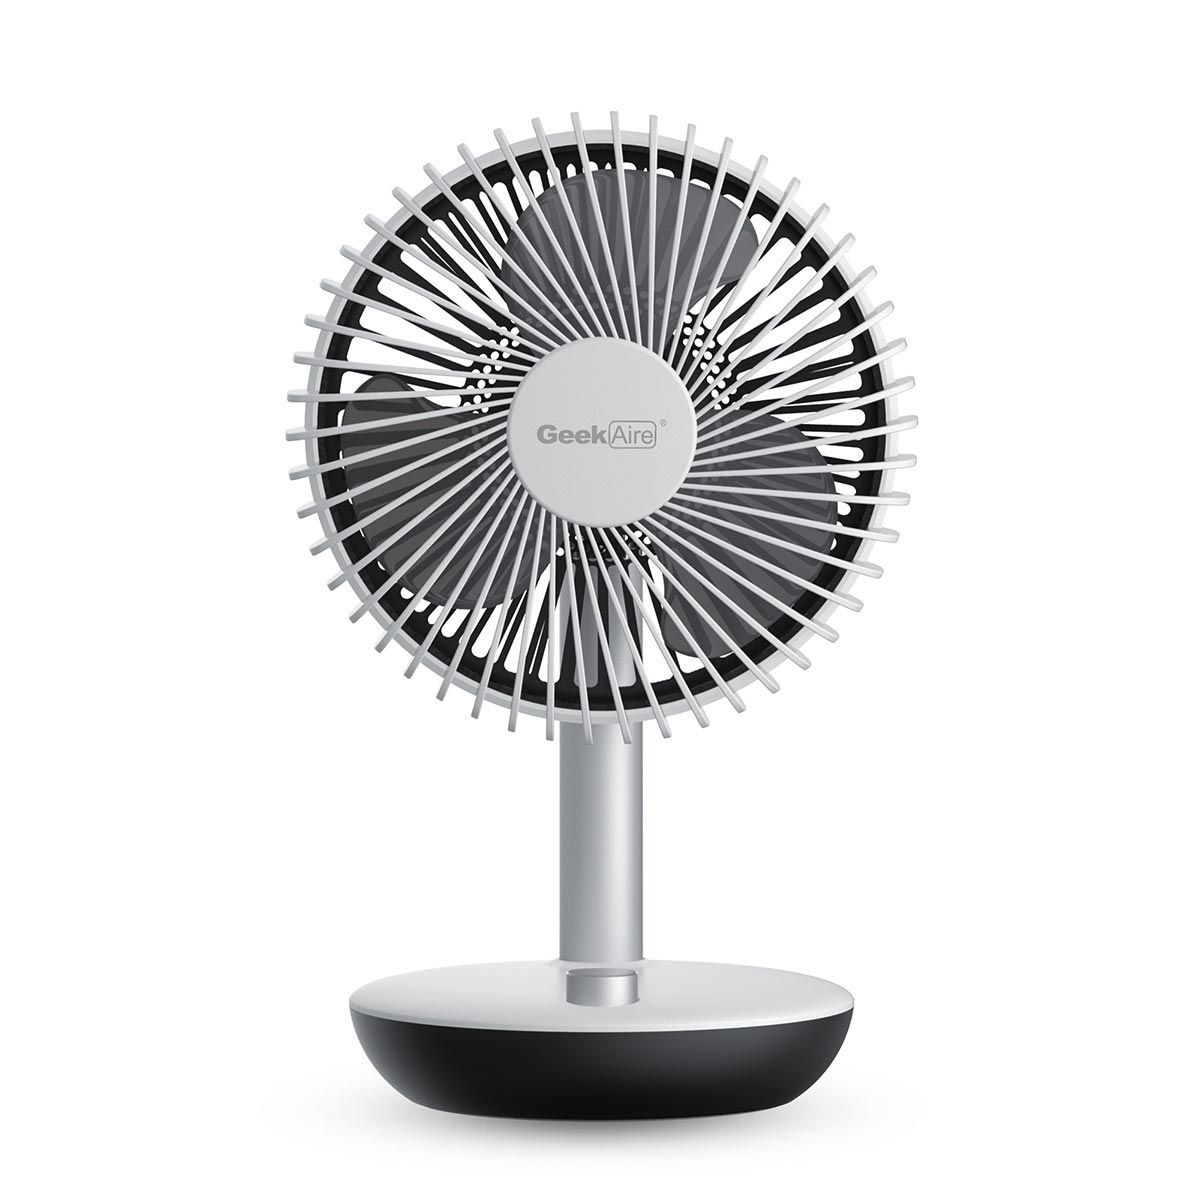 Geek Aire Rechargeable Mini Fan - 6 Inch Oscillating (White)